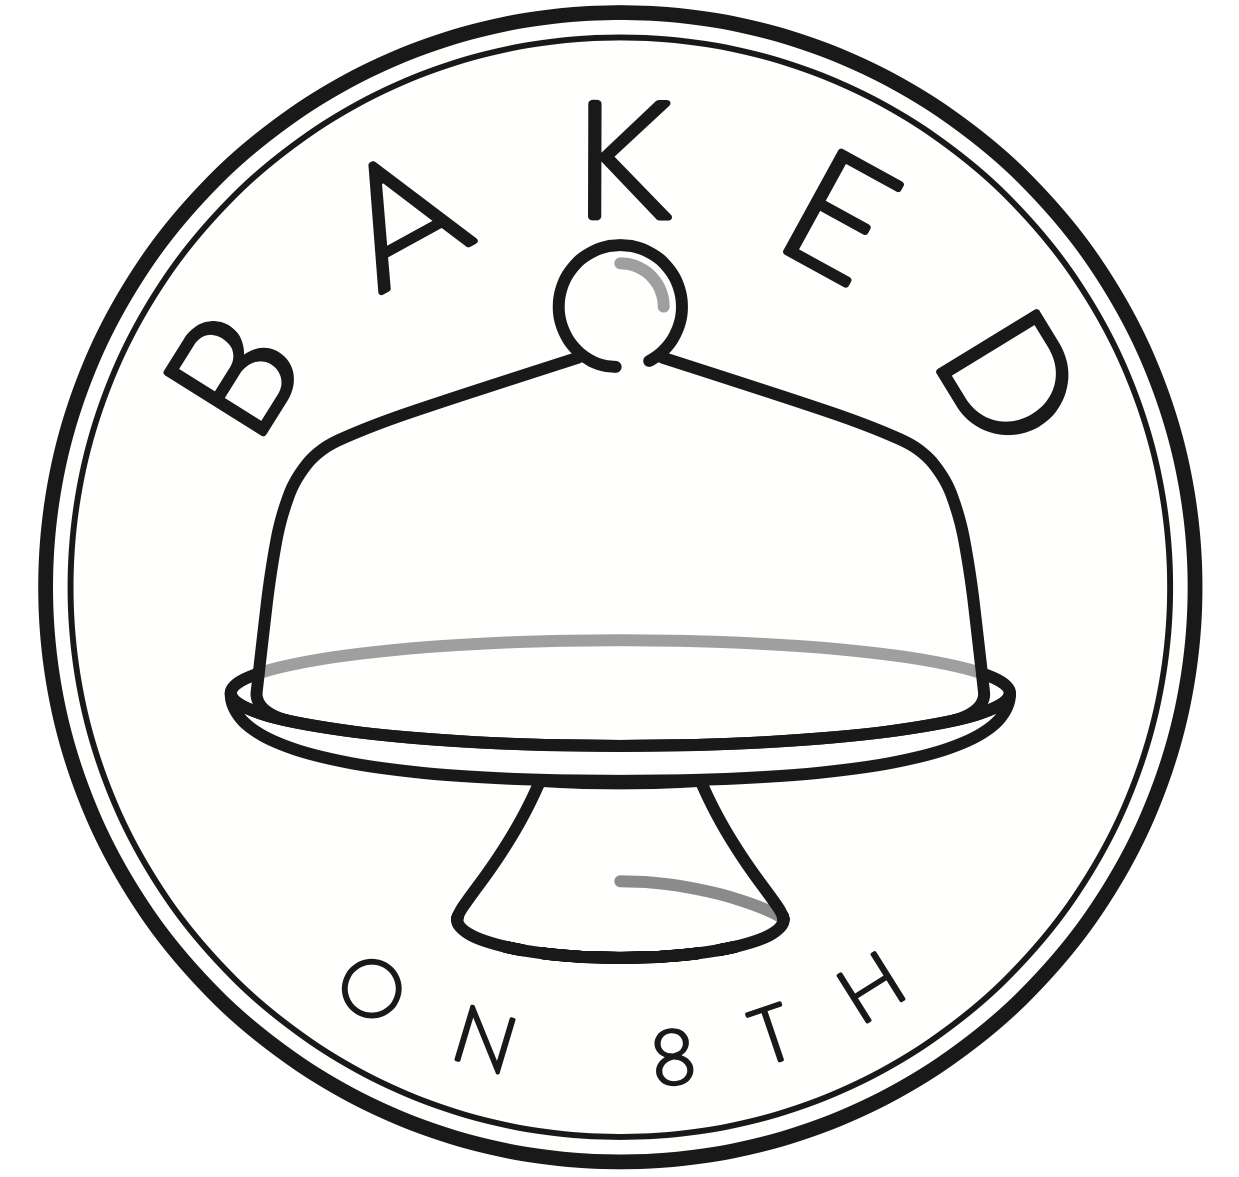 Baked on 8th